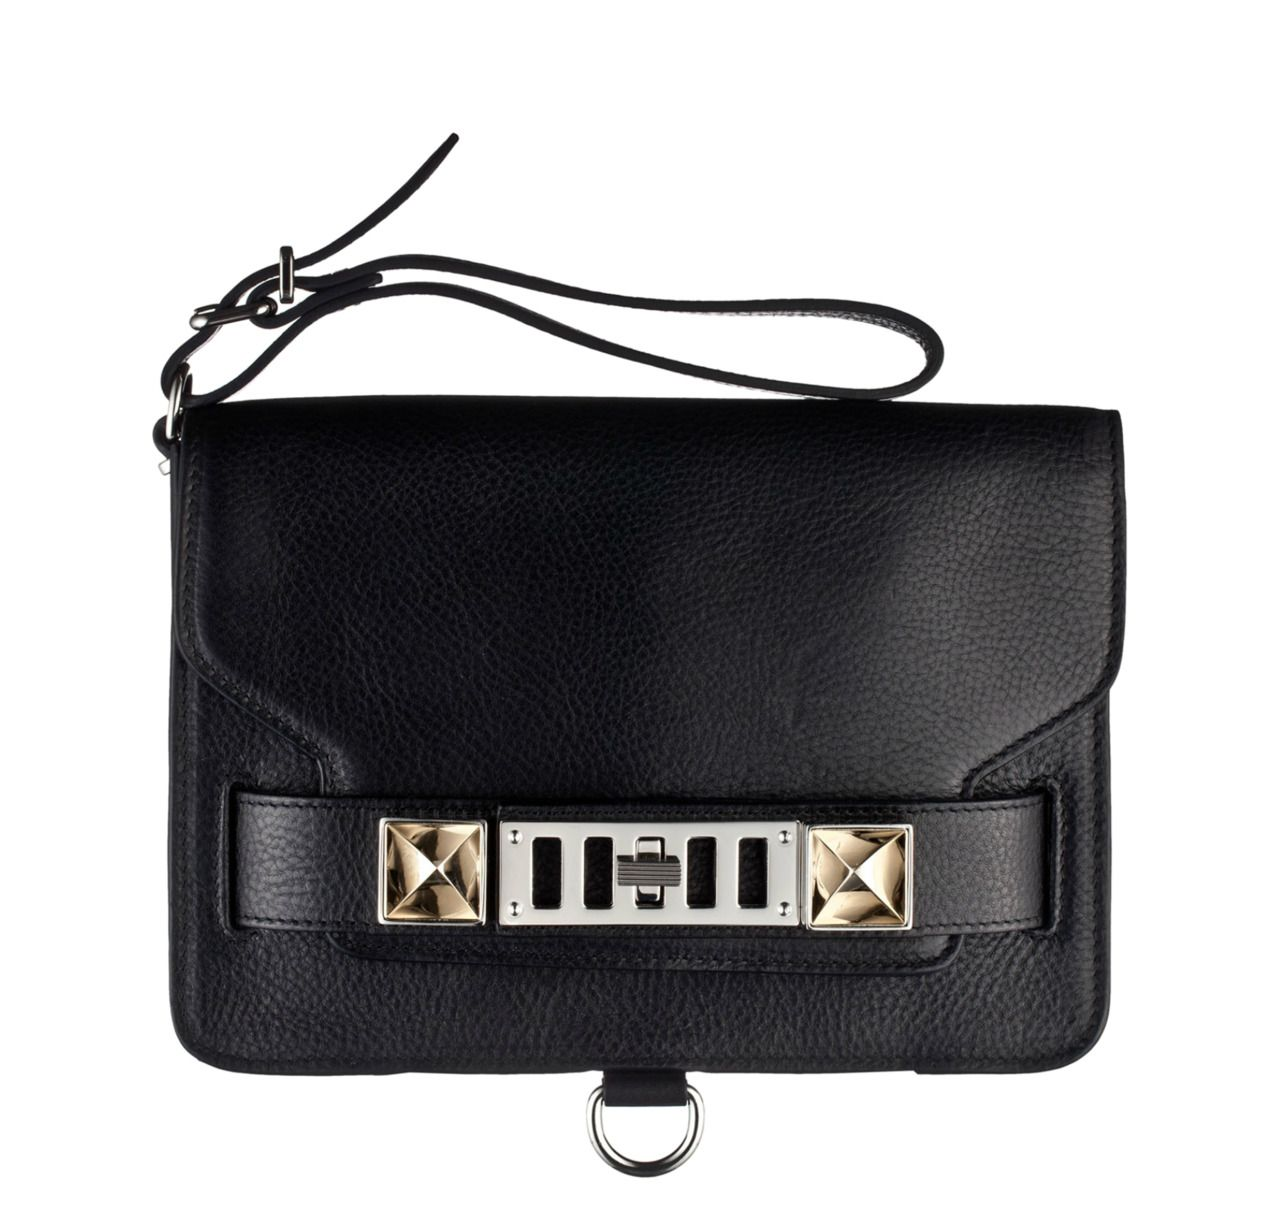 ps11 clutch (proenza schouler) // $975